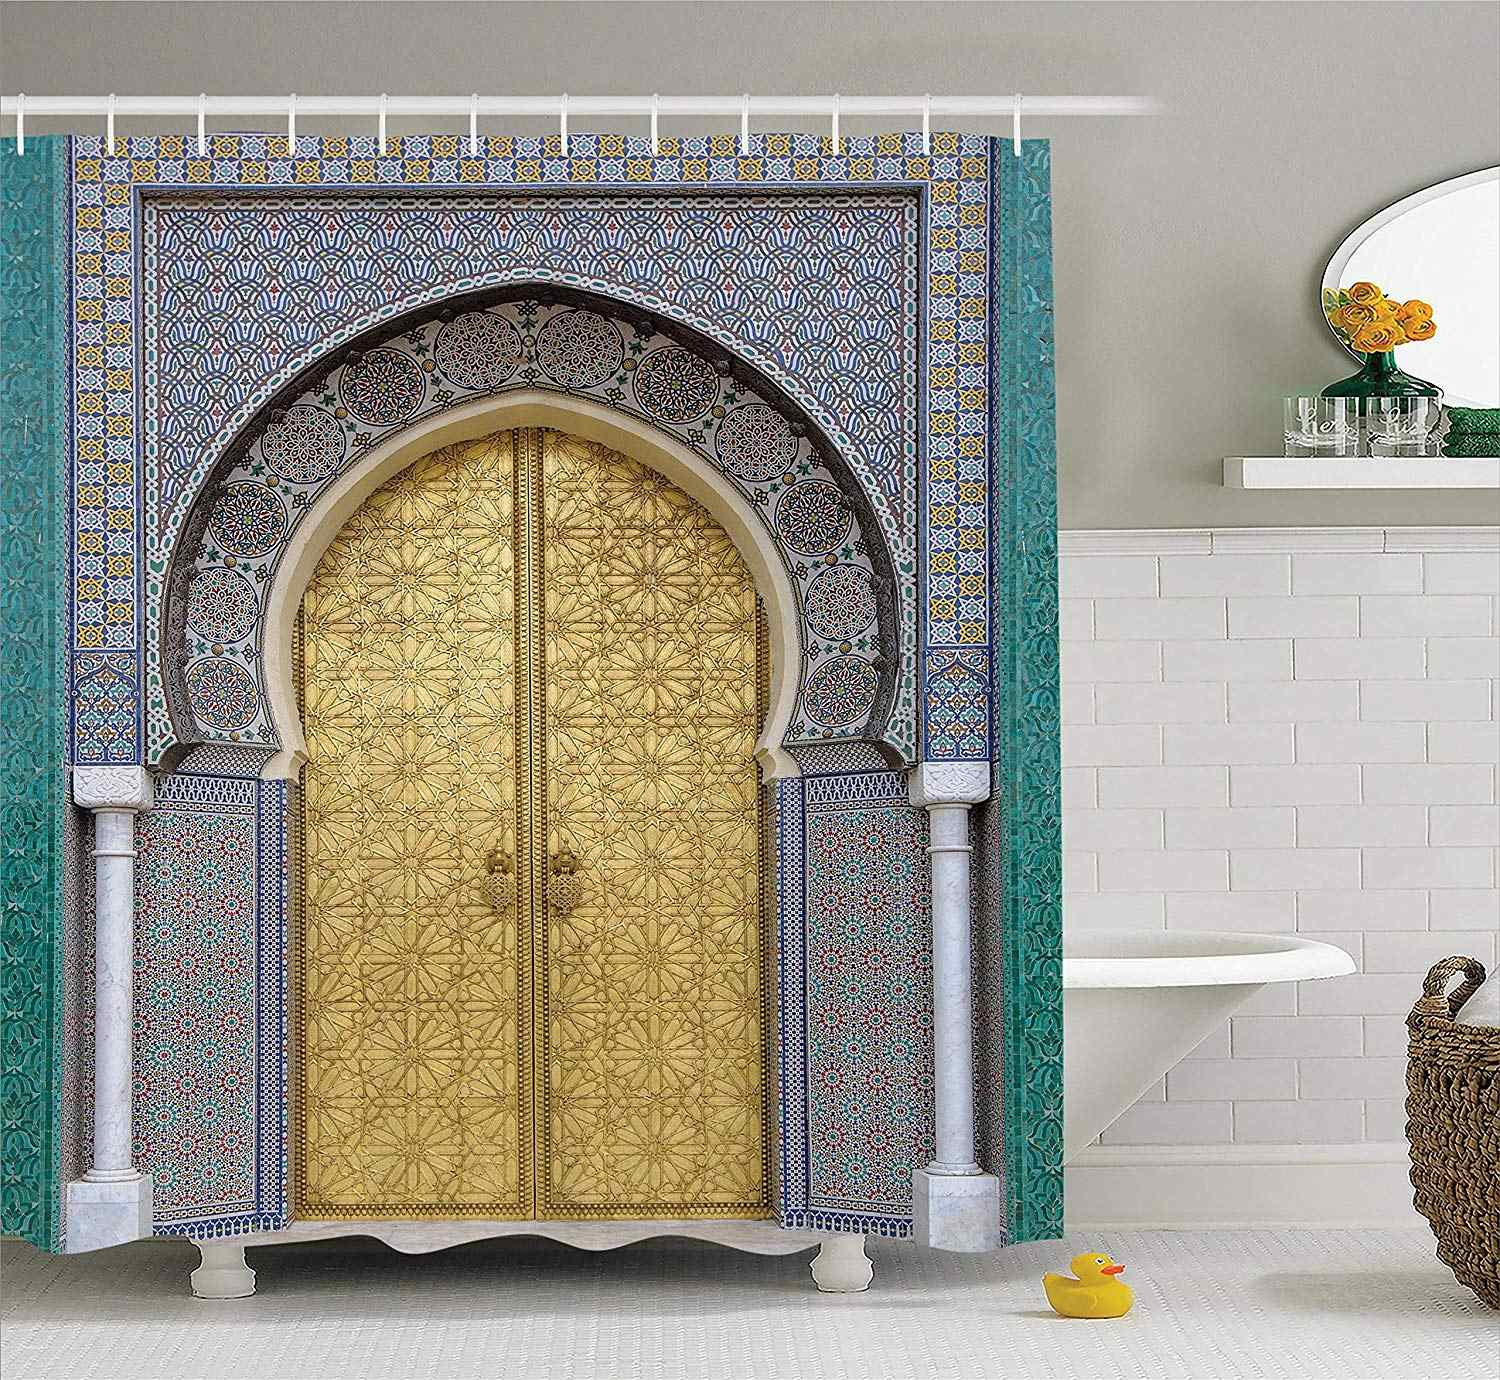 Moroccan Shower Curtain Set Antique Doors Morocco Gold Doorknob Ornamental Carved Intricate Artistic Bathroom